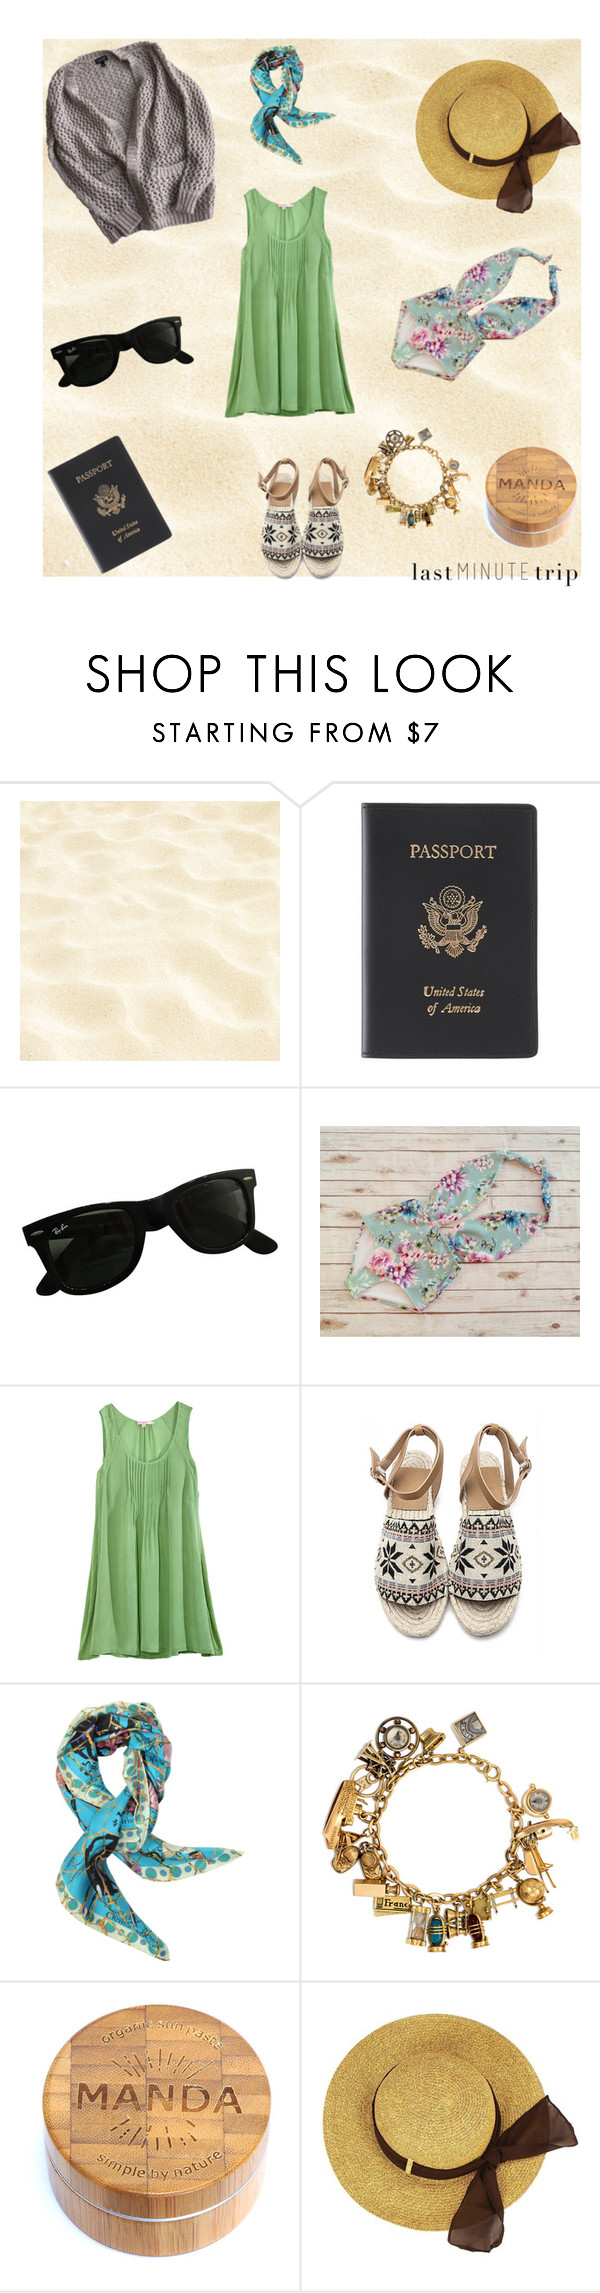 """on a whim"" by sabrina-fatma-ahmad ❤ liked on Polyvore featuring Royce Leather, Ray-Ban, Calypso St. Barth, Christian Lacroix, Topshop and lastminutetrip"